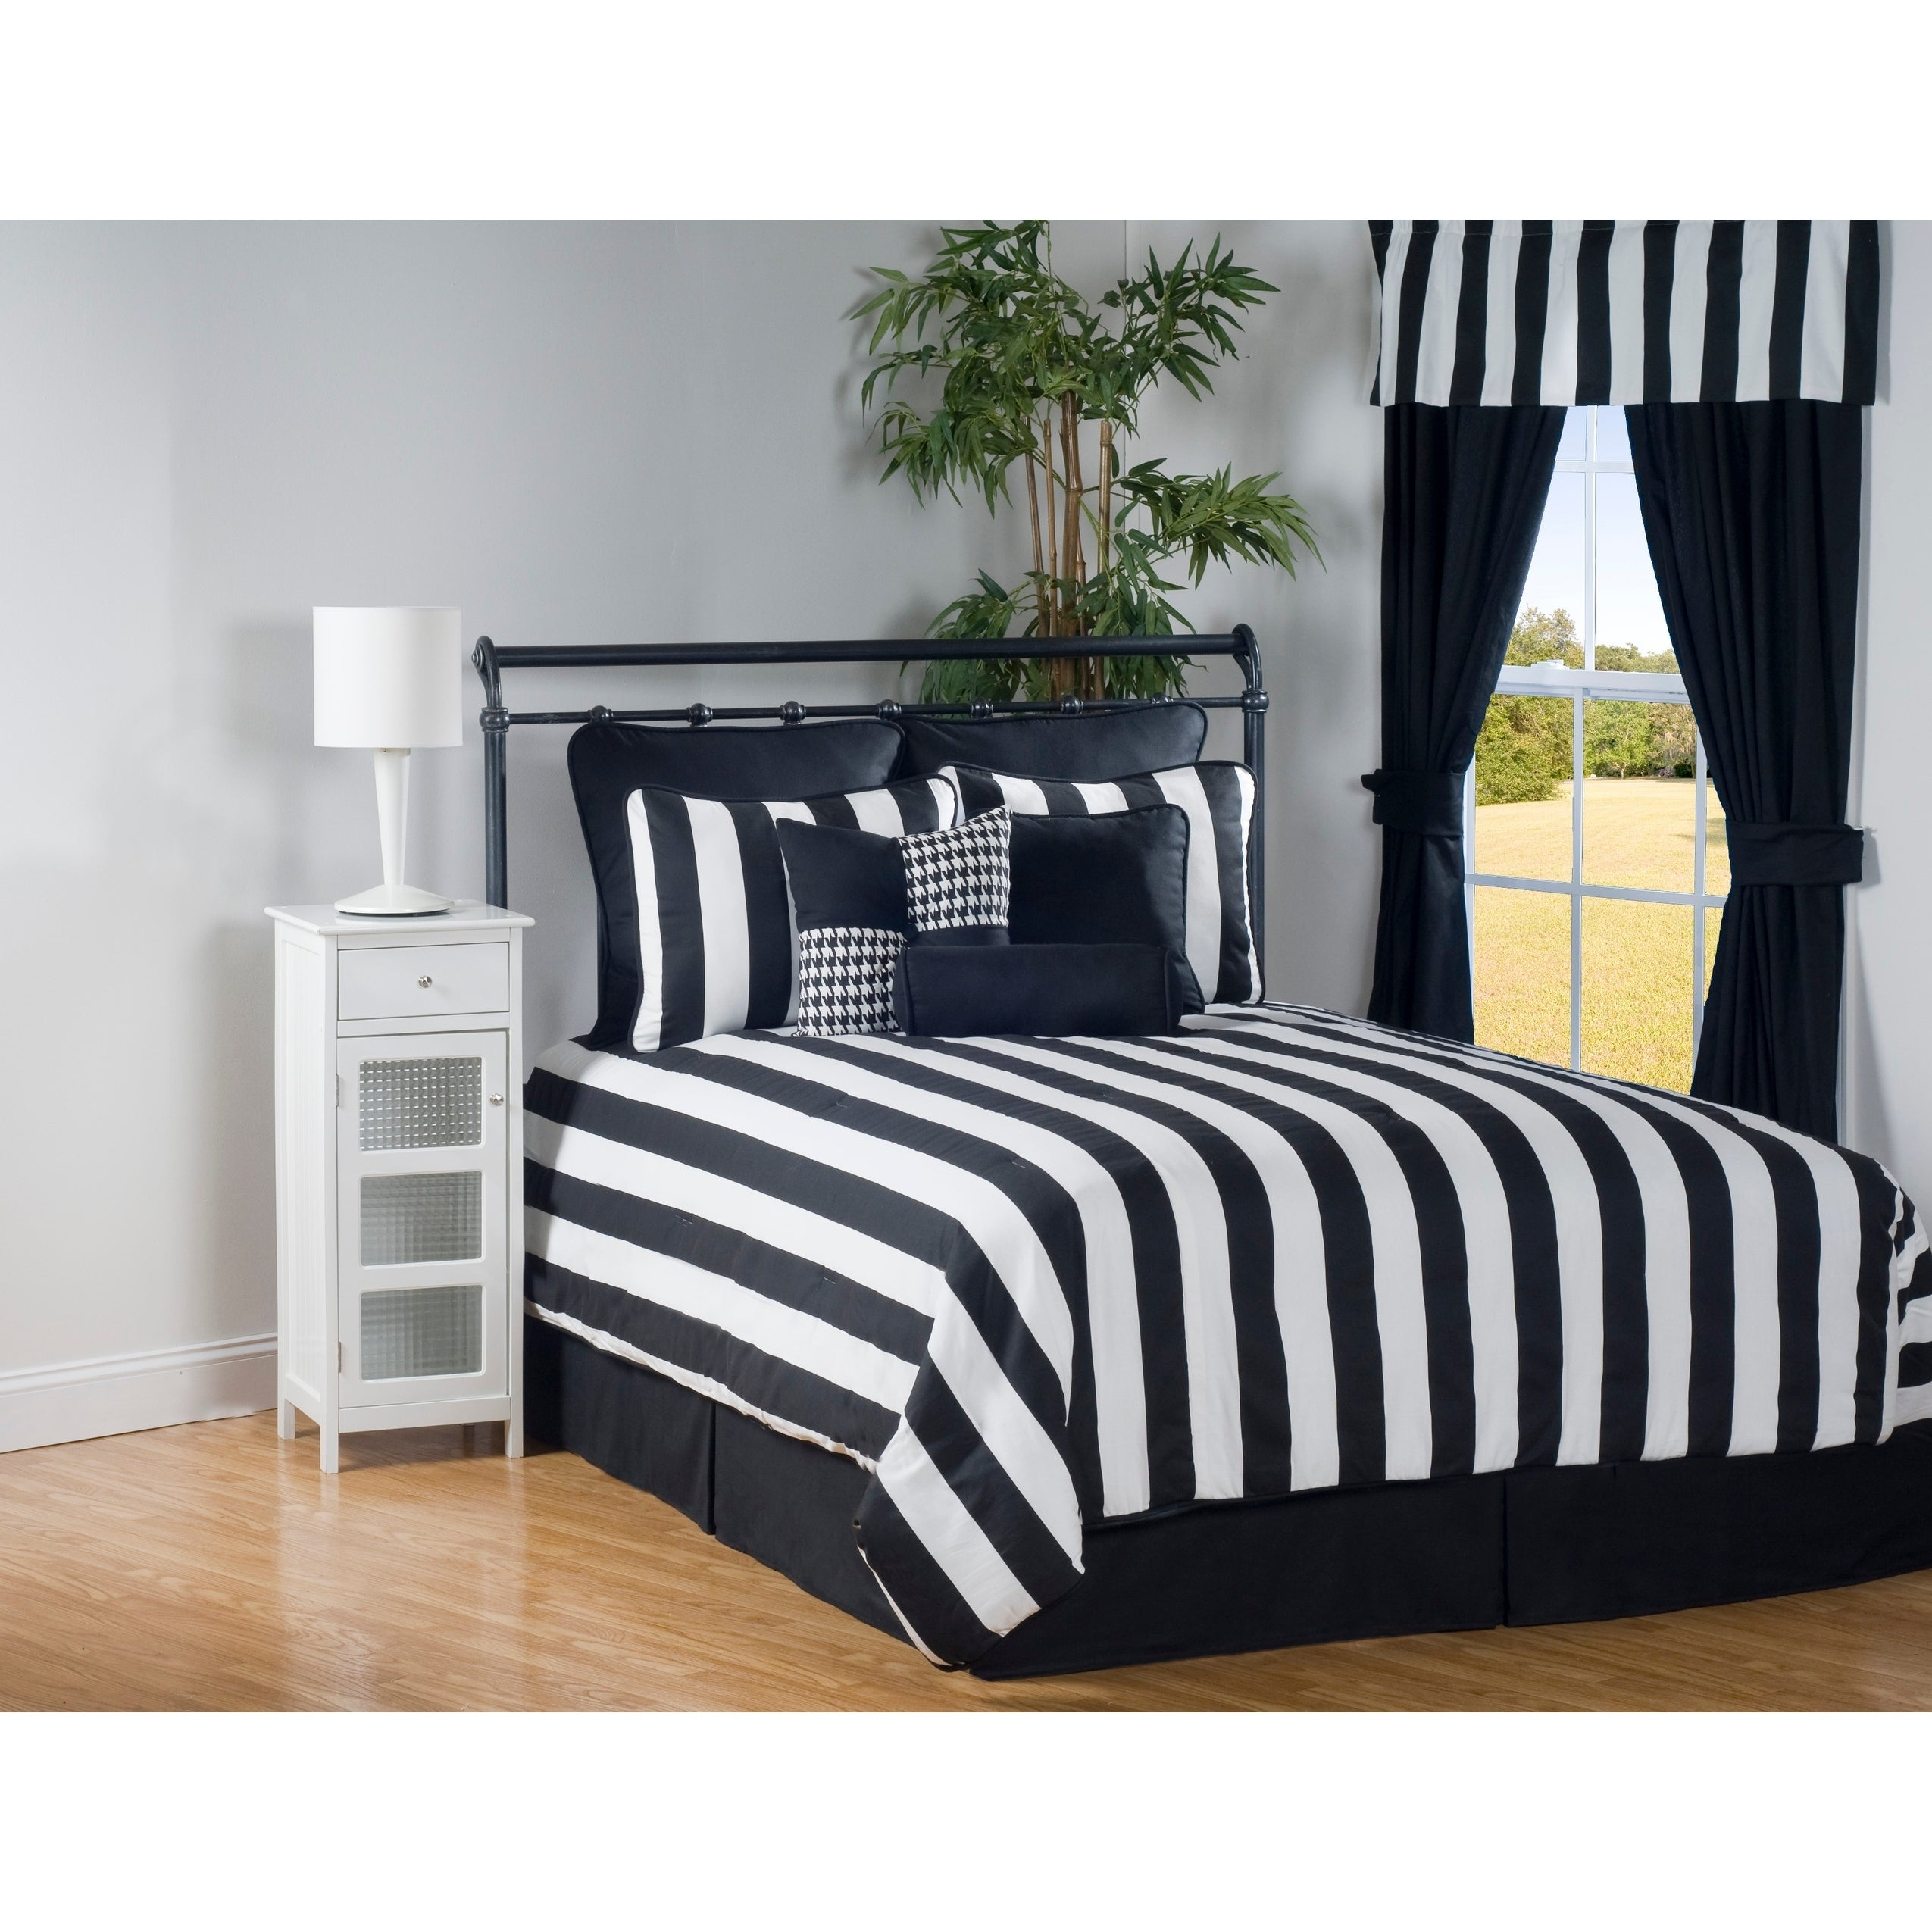 Midtown Contemporary Stripe Black And White Comforter Set Overstock 28110913